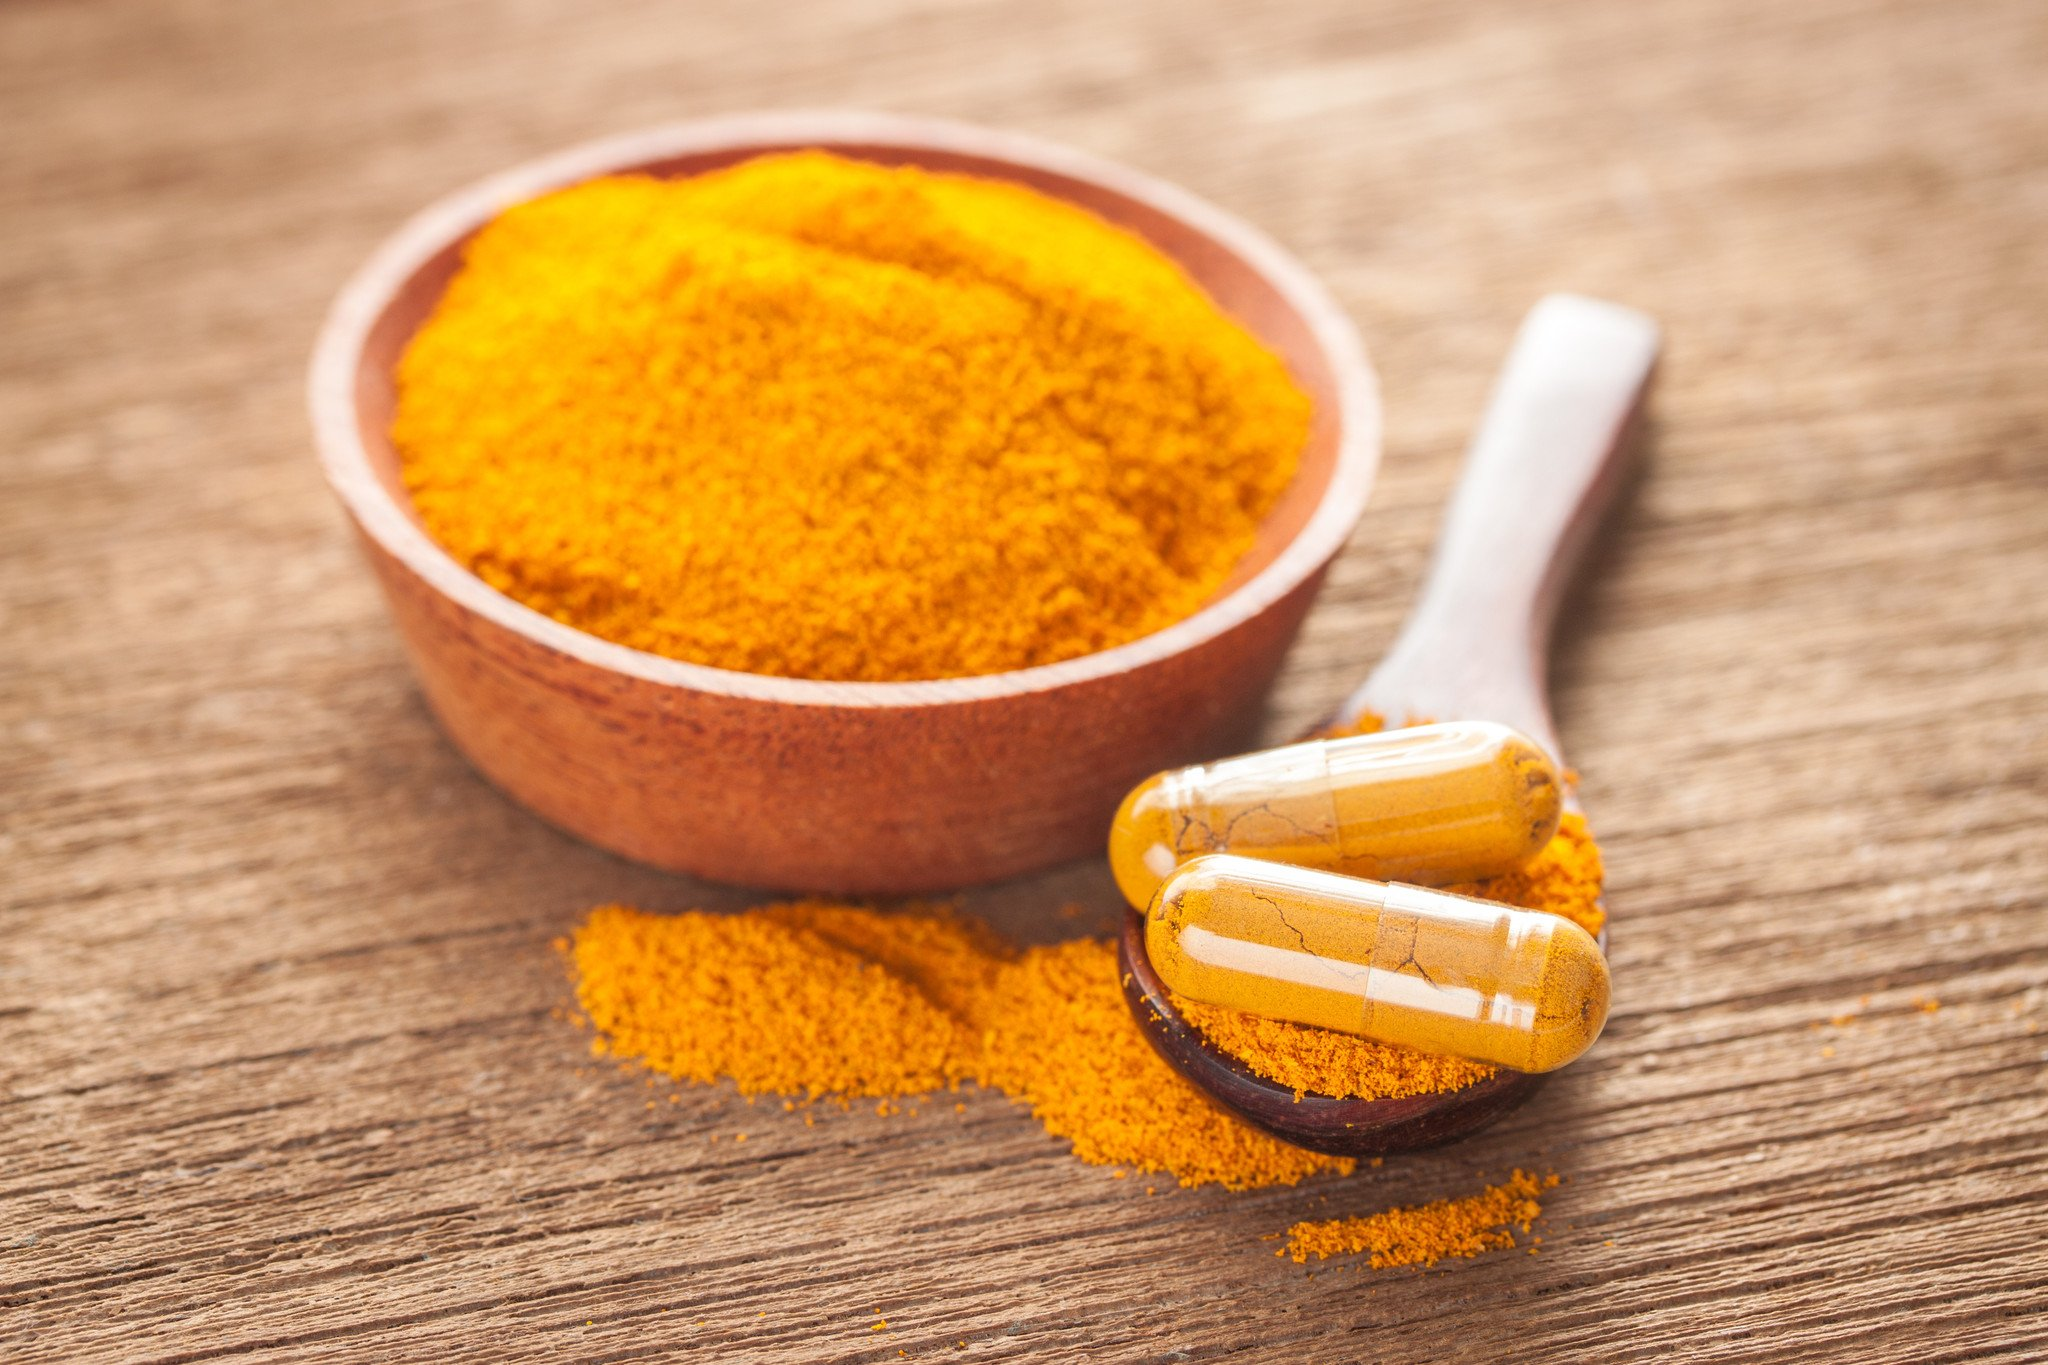 Best Turmeric Substitutes For Cooking